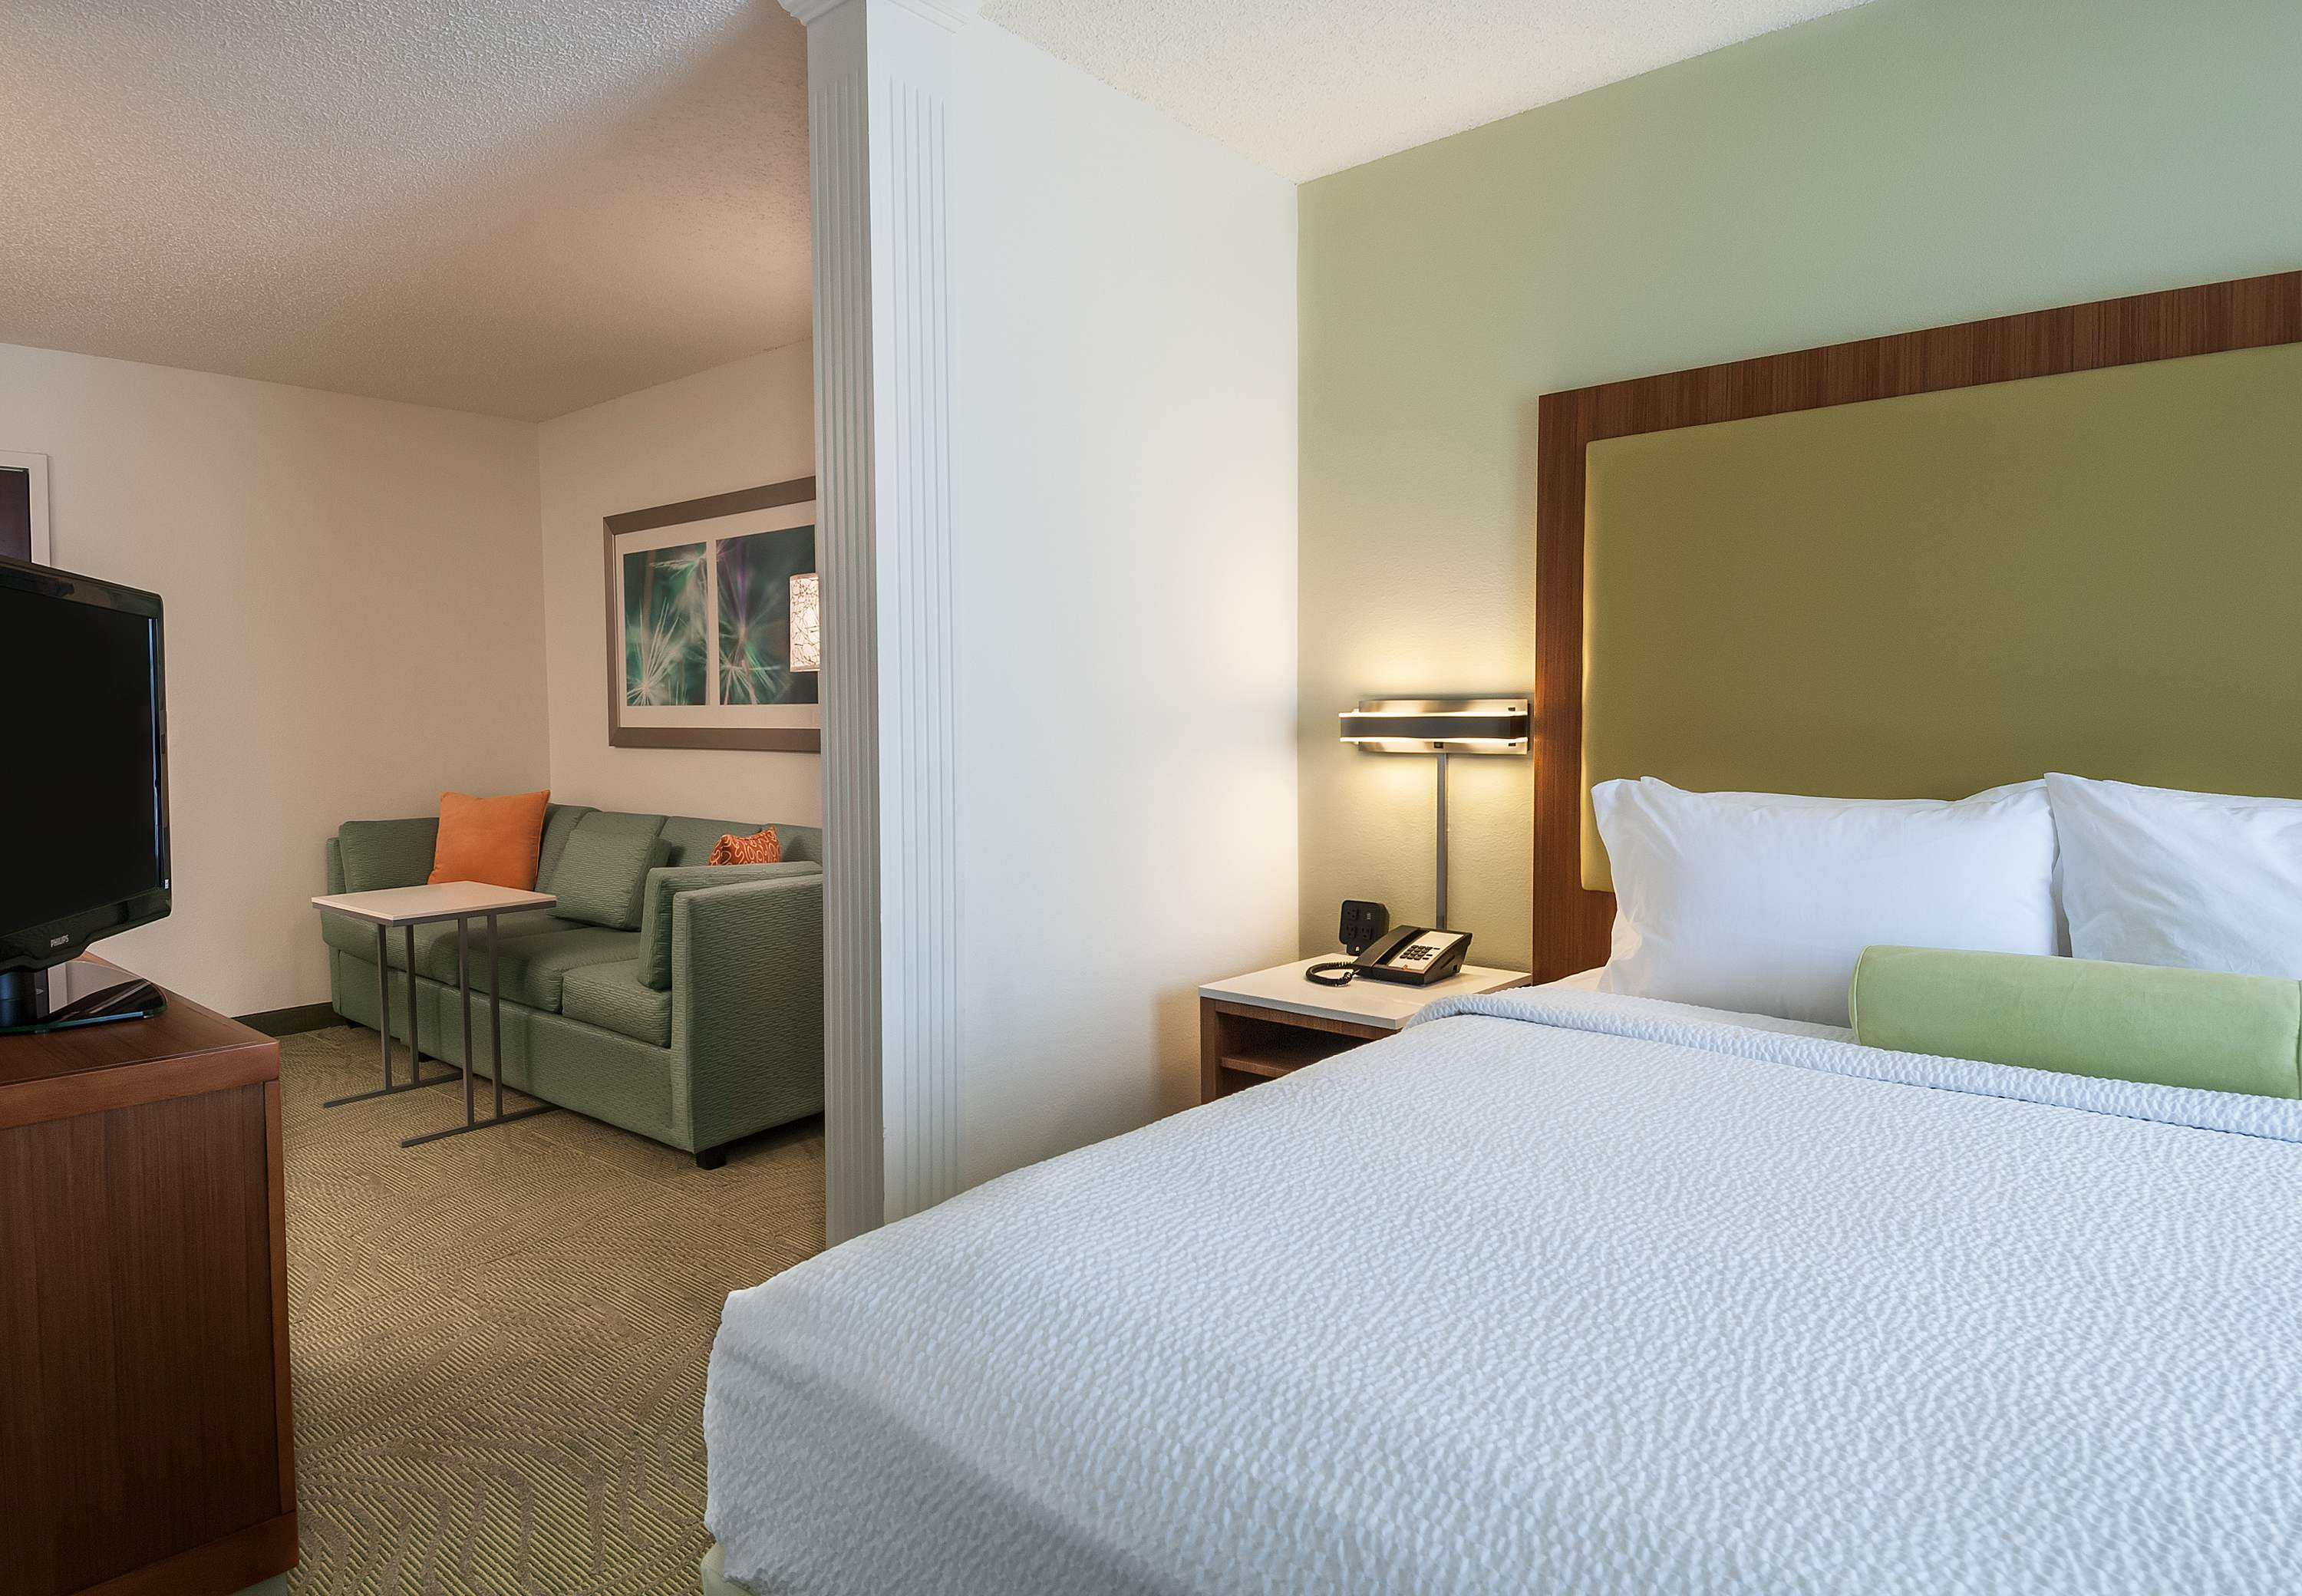 SpringHill Suites by Marriott Baton Rouge South image 3